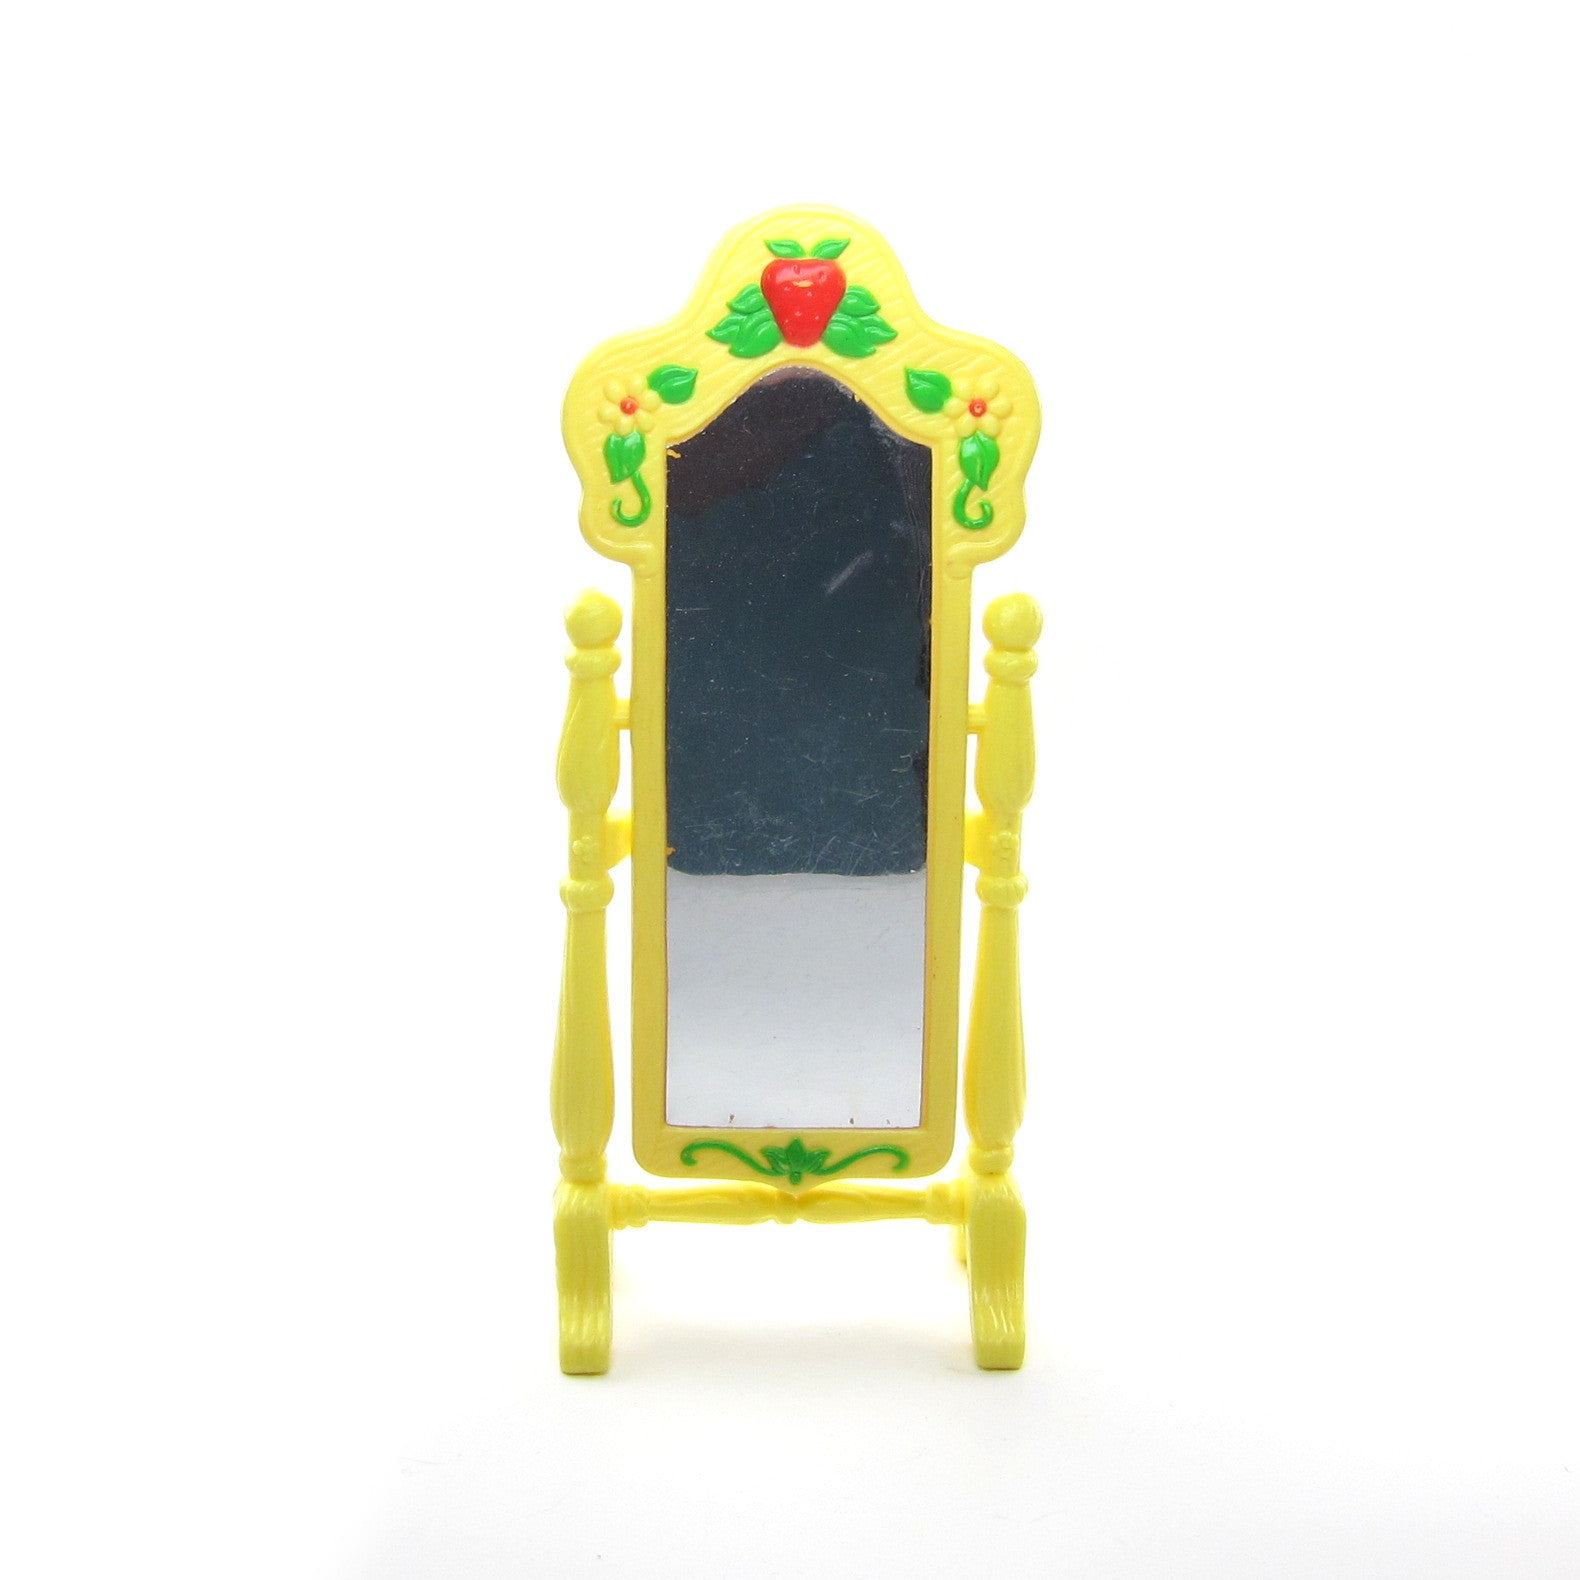 Full length mirror for Strawberry Shortcake Berry Happy Home